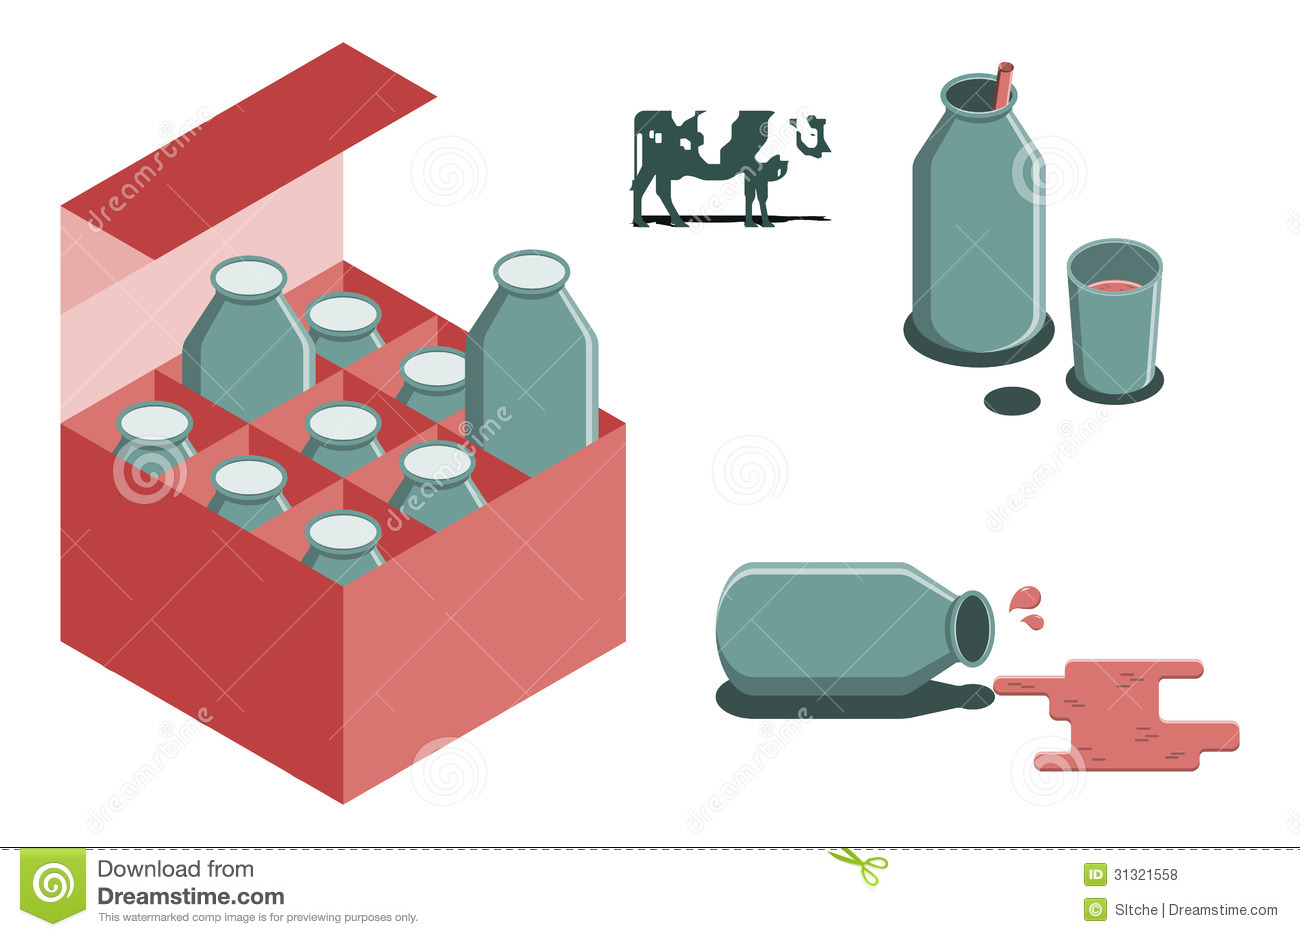 Tube Nuts Prices further Goat Shelter Plans What Must You Look Out For When Raising Goats also Stock Images Cartoon Dairy Cow Image20014874 further Goat Barn Layout Plans moreover S1250E11. on dairy milk house plans